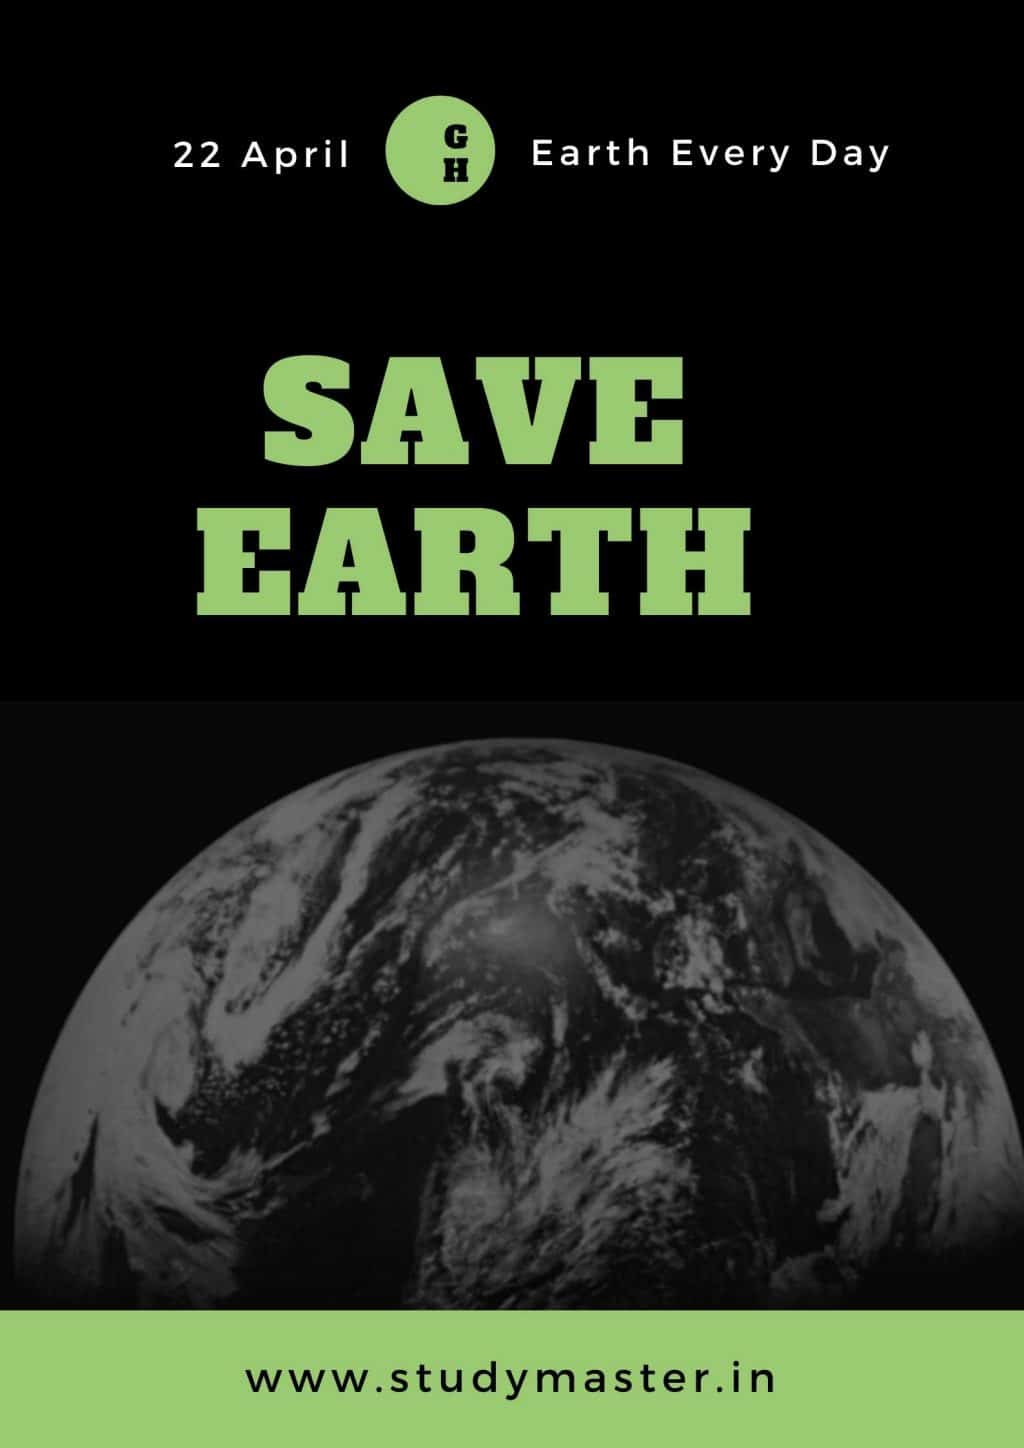 poster on save mother earth